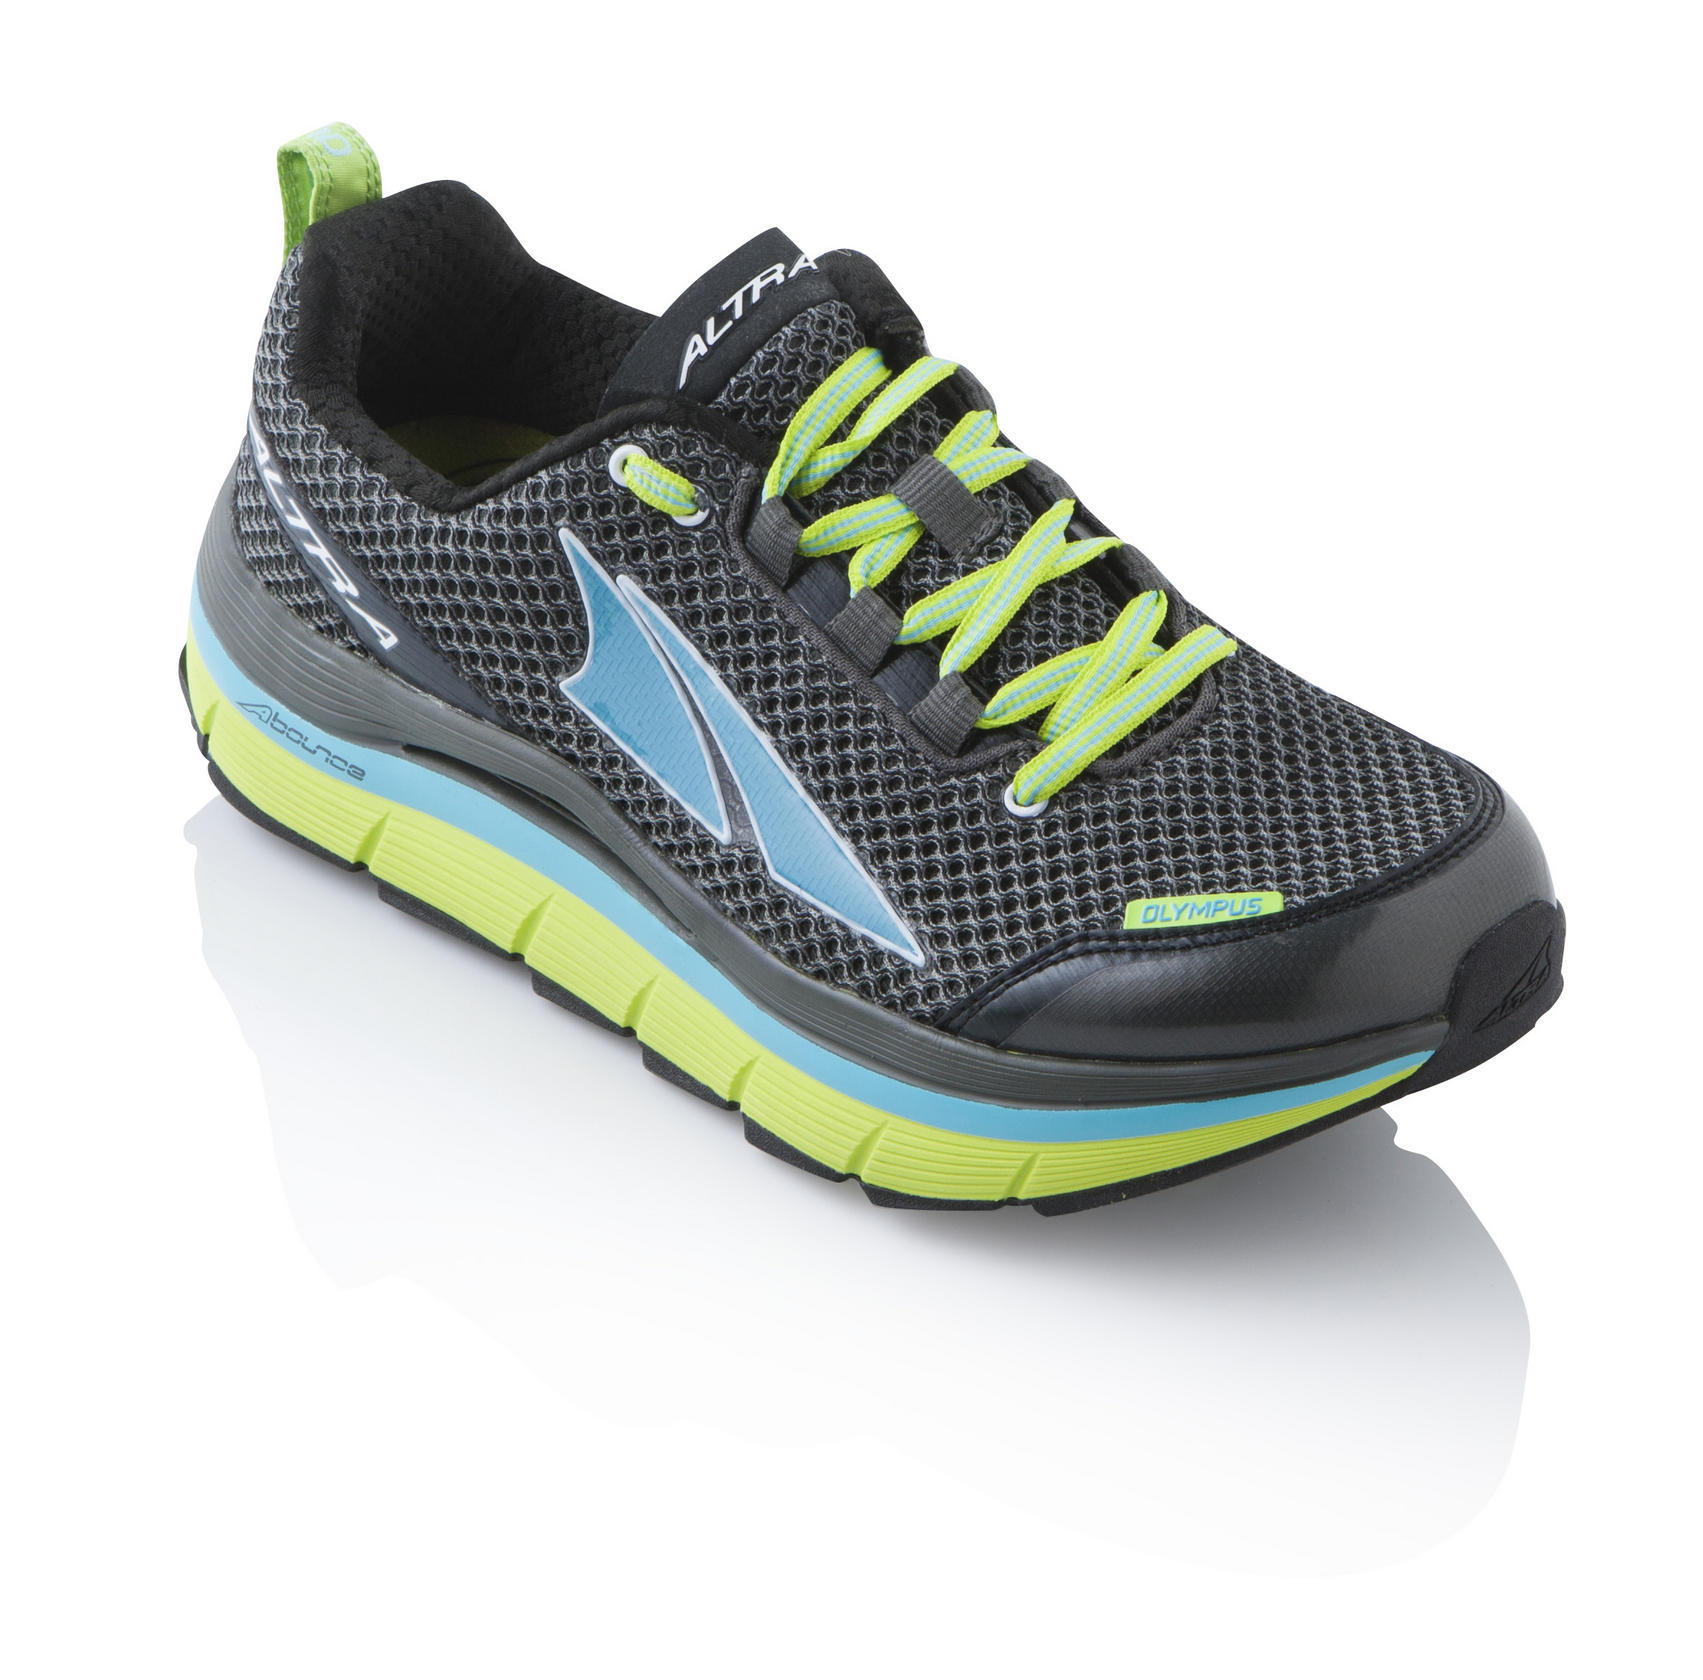 Best Thick Soled Running Shoes